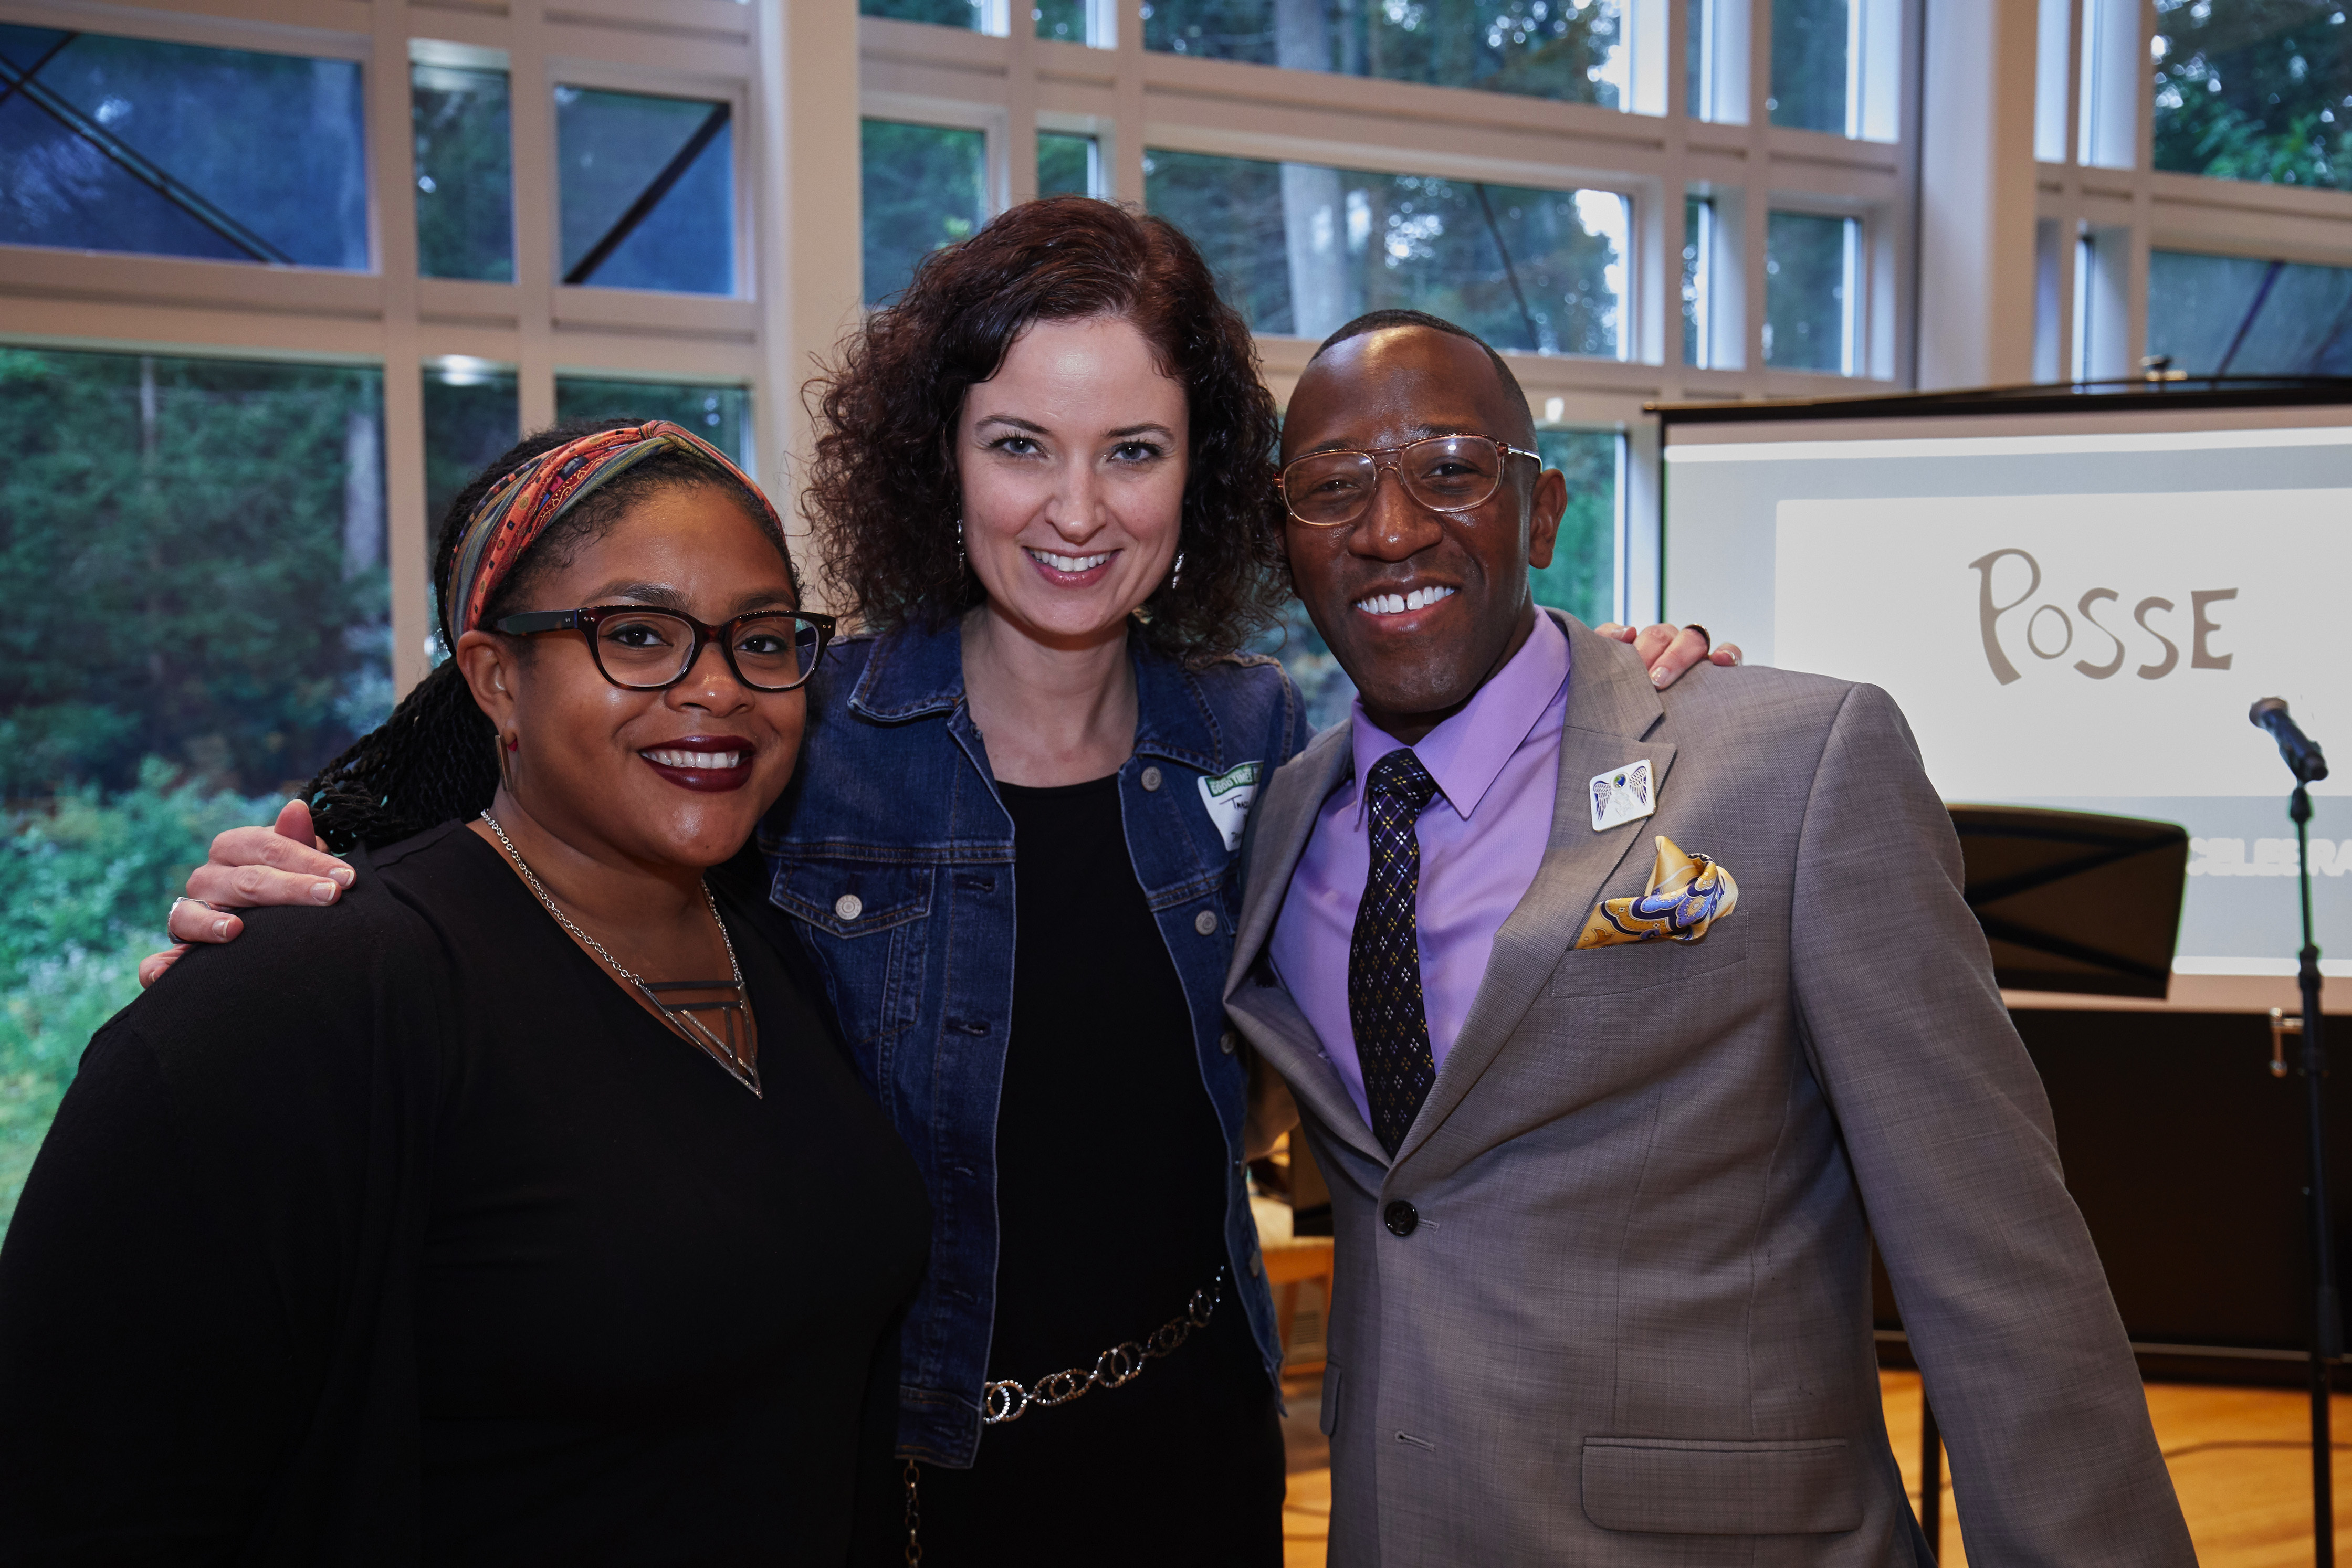 Posse alumna Jayda Shanks, Tracey Reza and Babson alumnus Jamaal Eversley at Babson College's celebration of 15 years of Posse on campus.